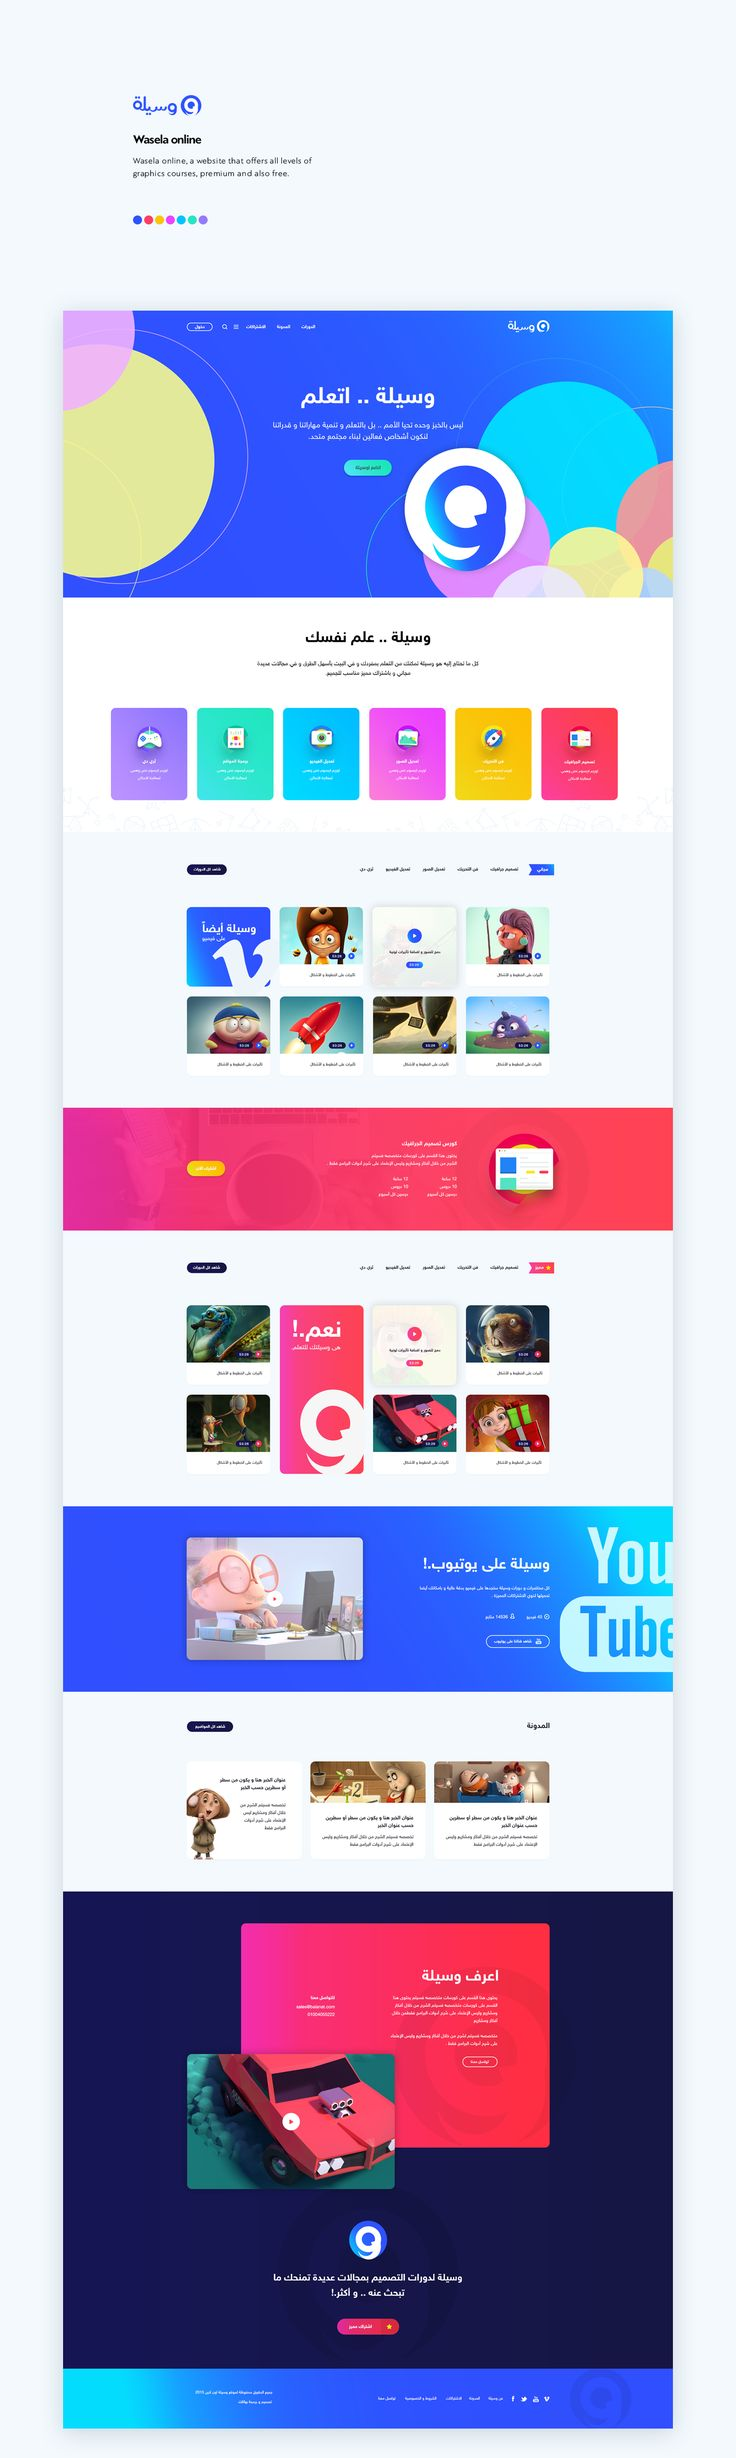 Wasela online web design UX/UI on Behance